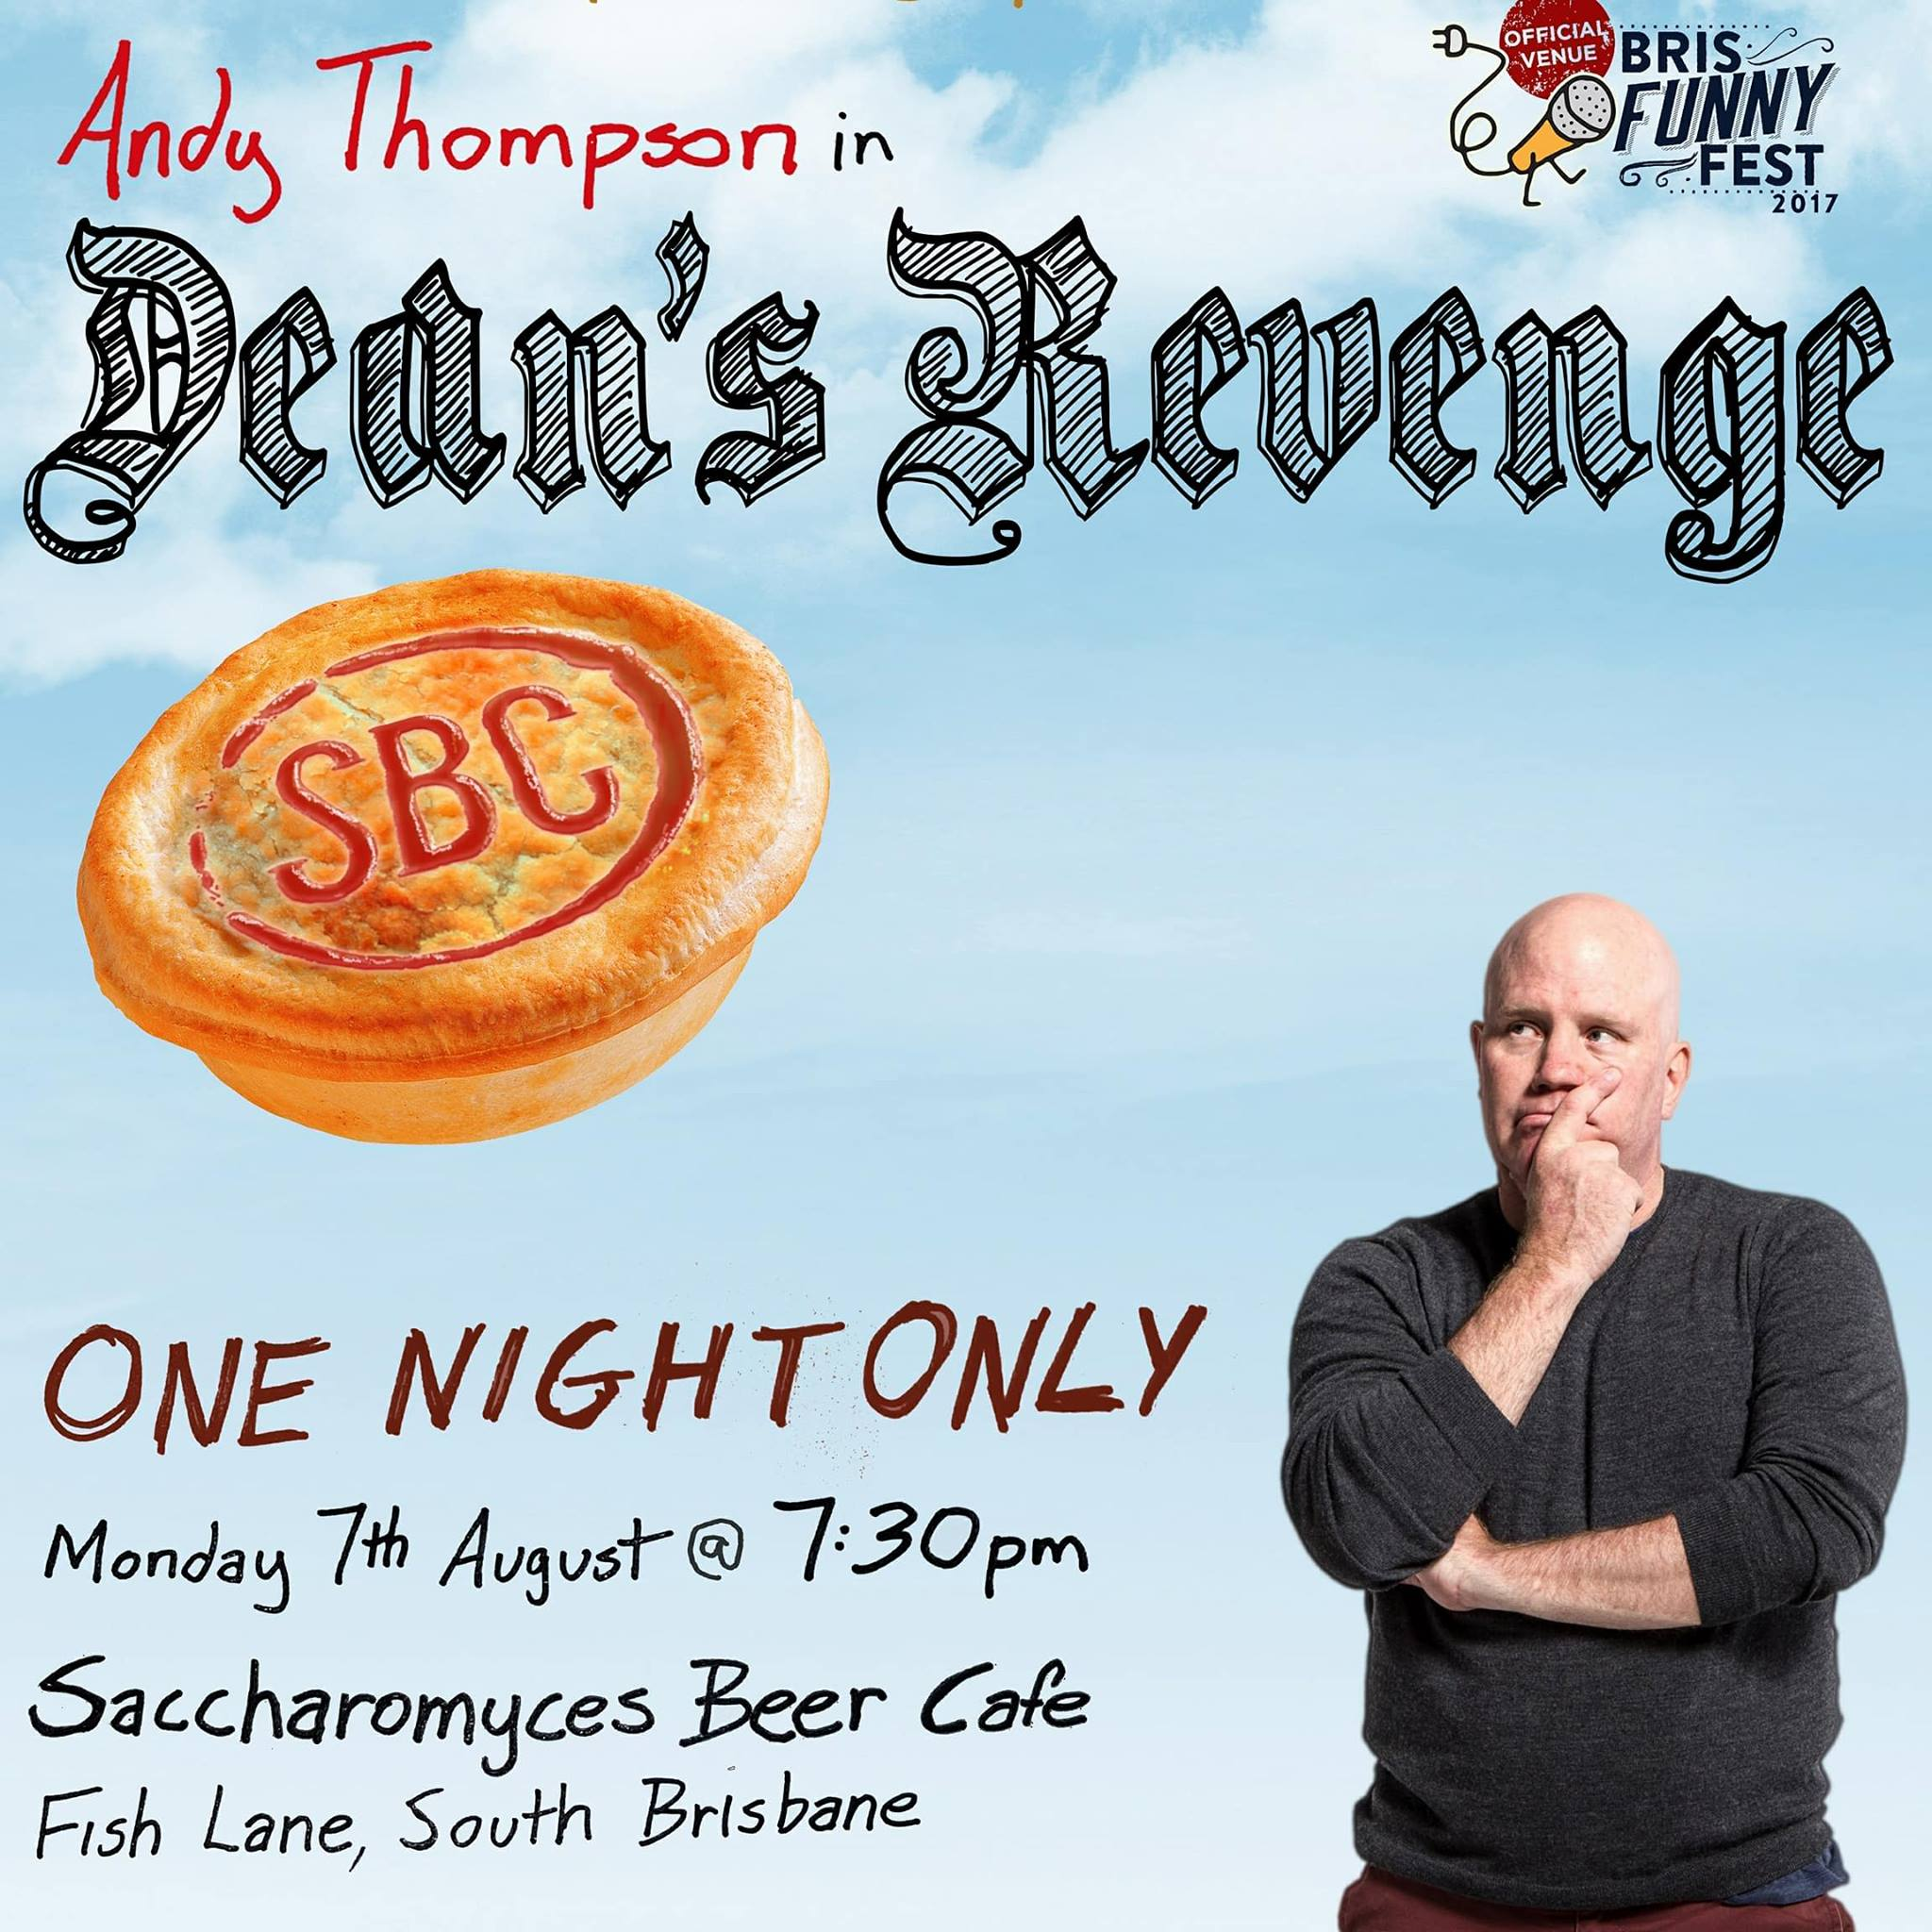 Dean's Revenge, performed by Andy Thompson